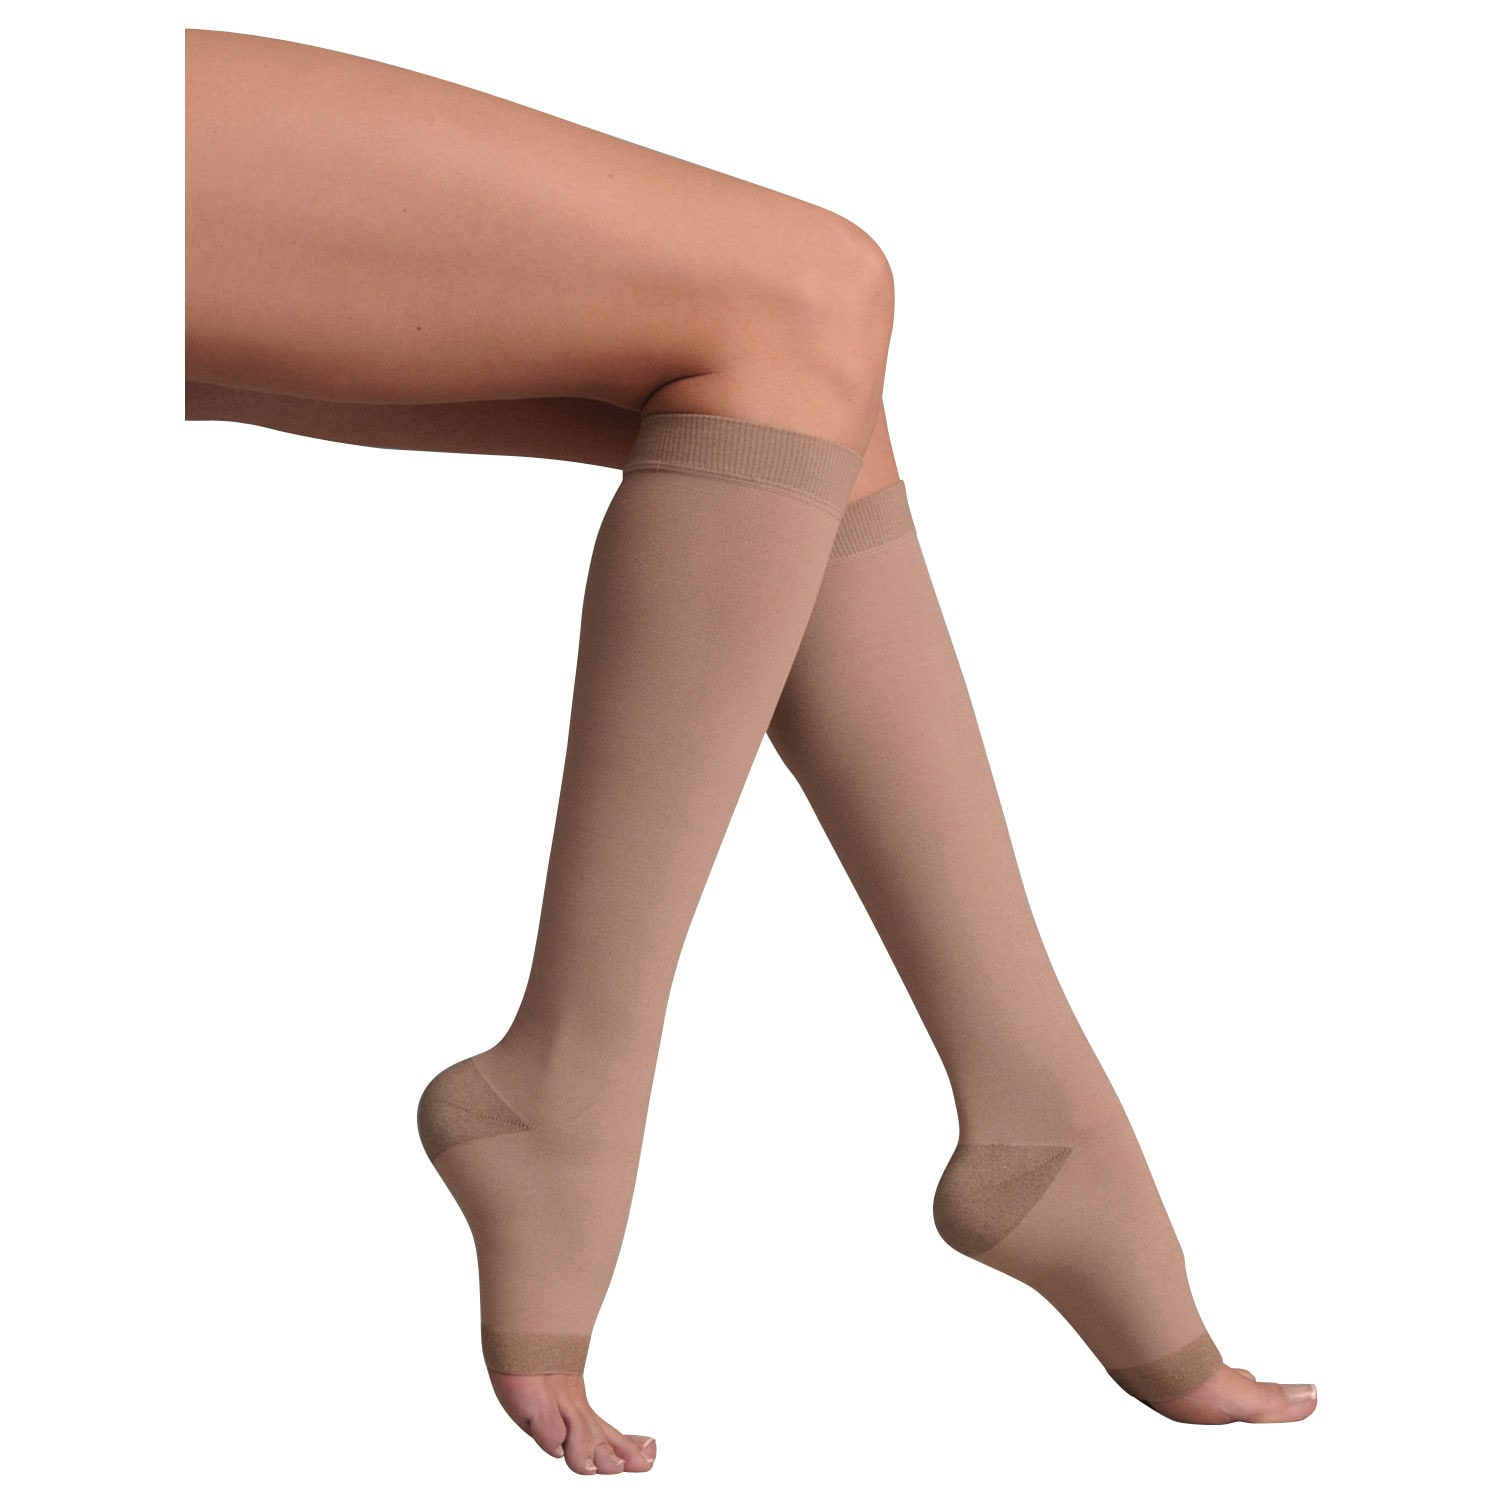 0366cfe00 Support Plus Women s Firm Compression Hose - Opaque Knee High Open Toe Wide  Calf